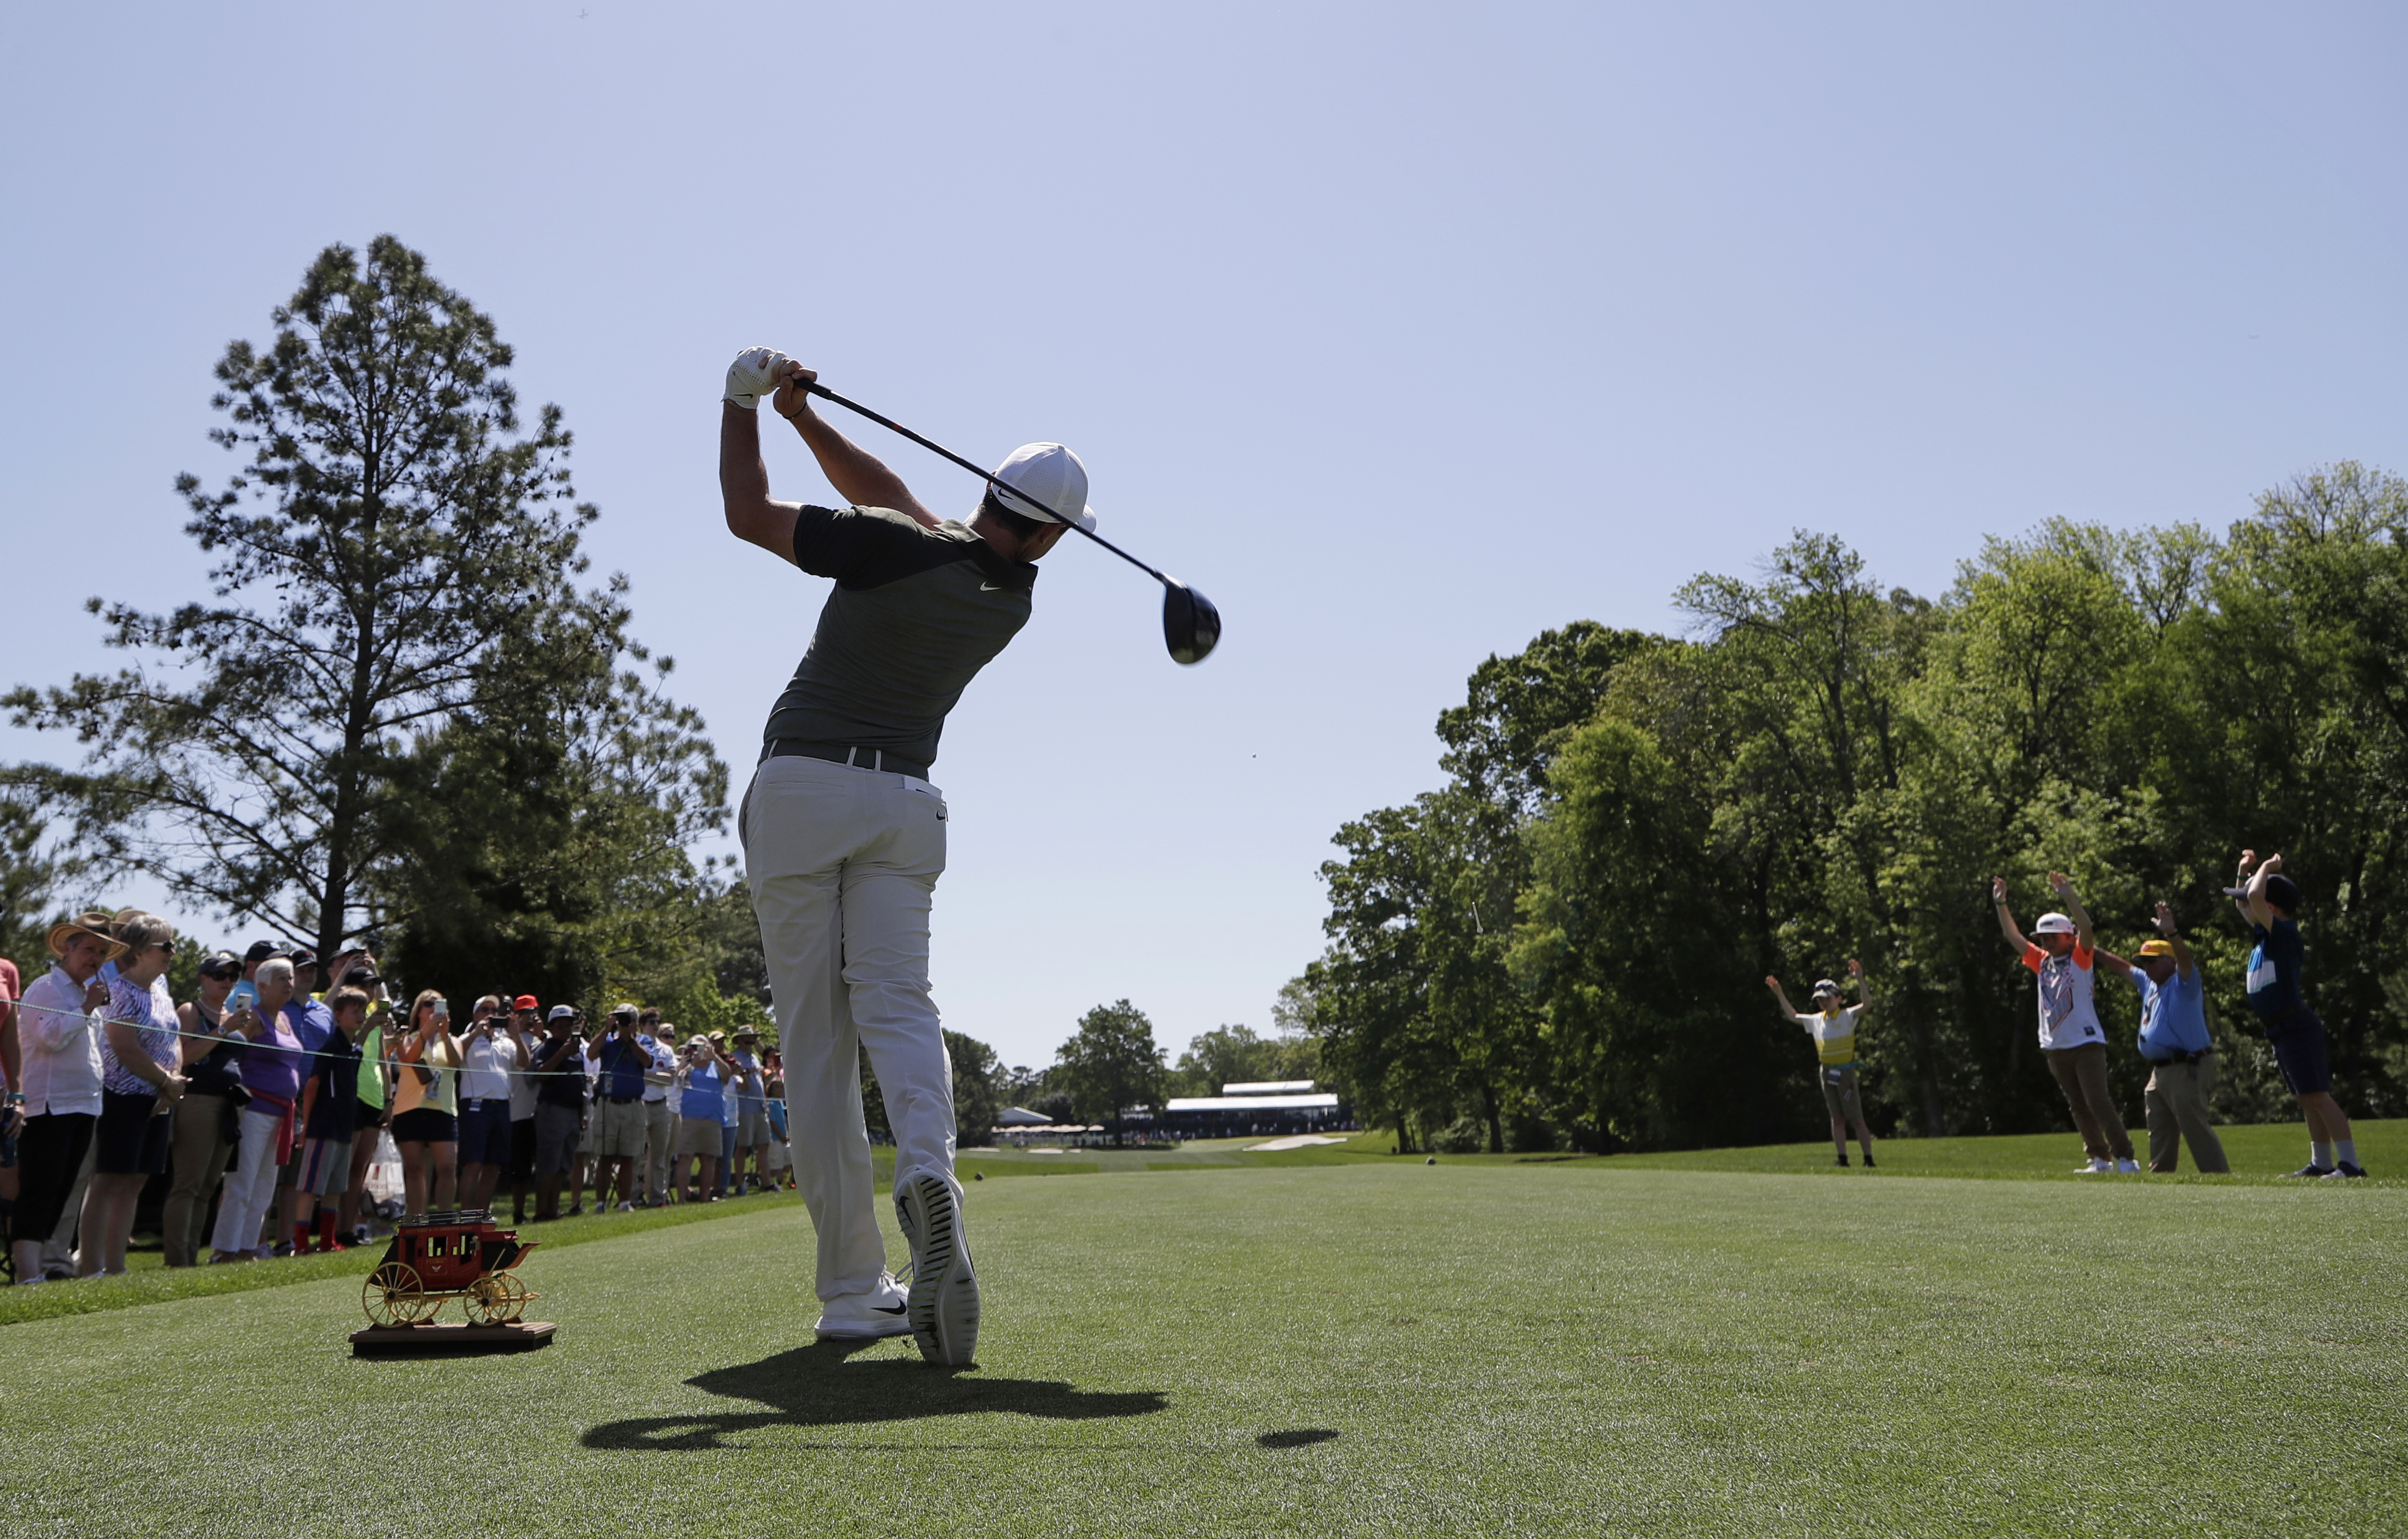 "<div class=""meta image-caption""><div class=""origin-logo origin-image ap""><span>AP</span></div><span class=""caption-text"">Rory McIlroy, of Northern Ireland, hits his tee shot on the eighth hole during the pro-am. (Chuck Burton)</span></div>"